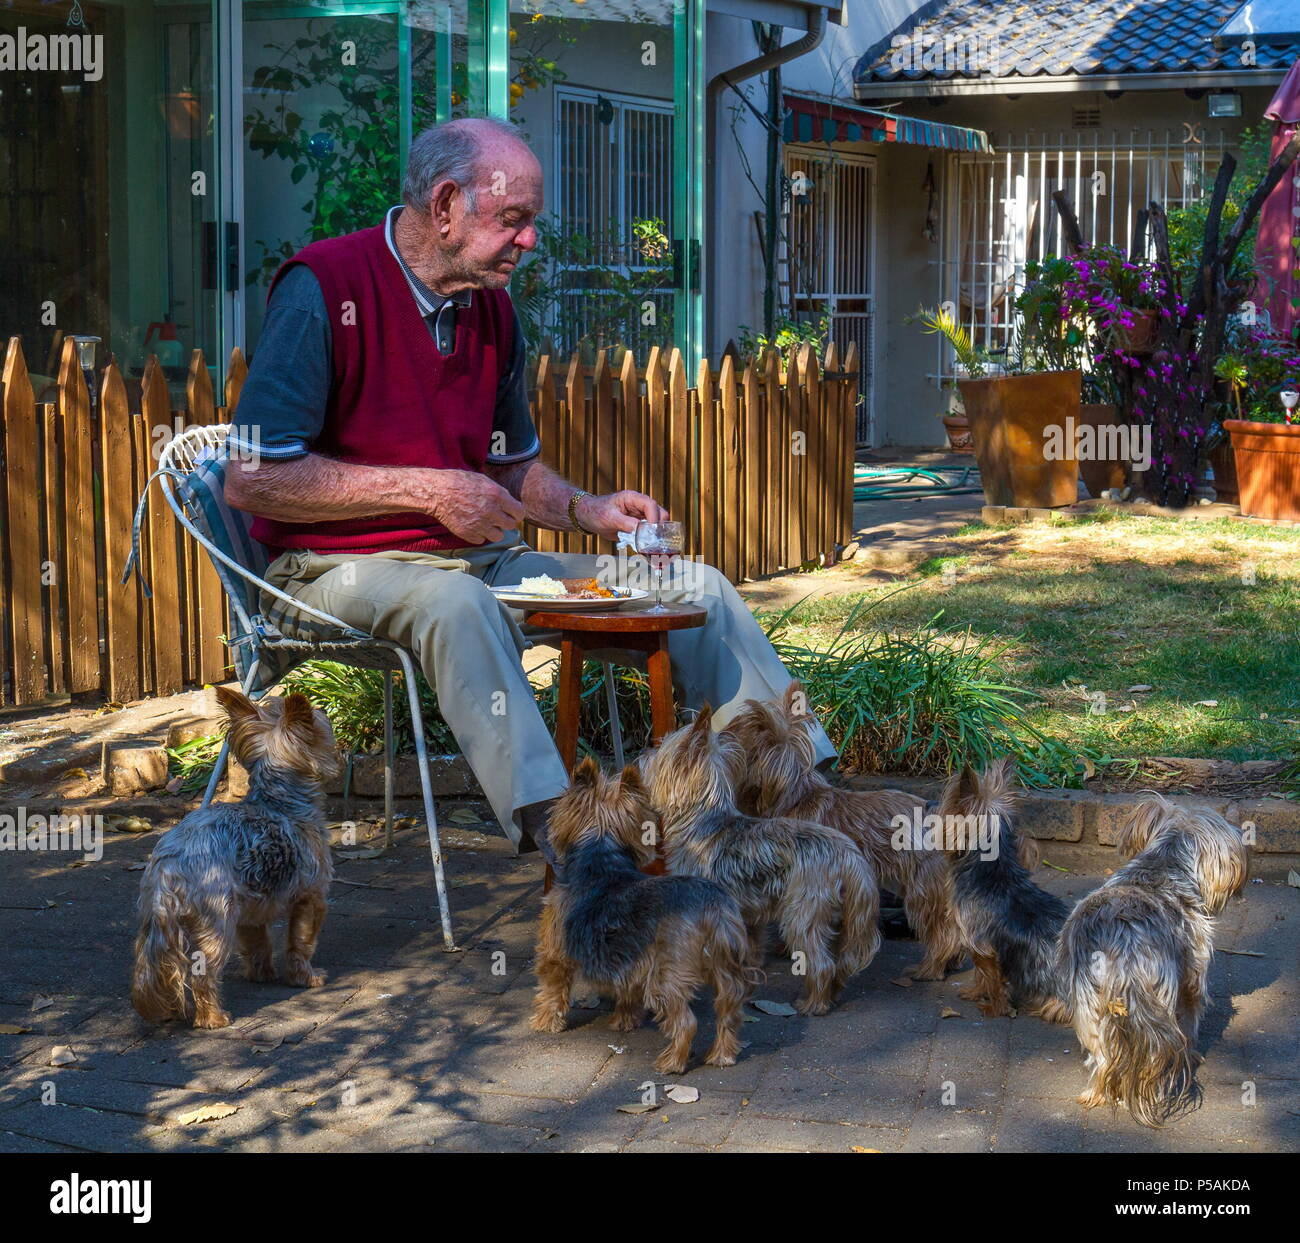 Old man eating lunch outdoors with pet dogs waiting patiently for a snack image in landscape format with copy space - Stock Image